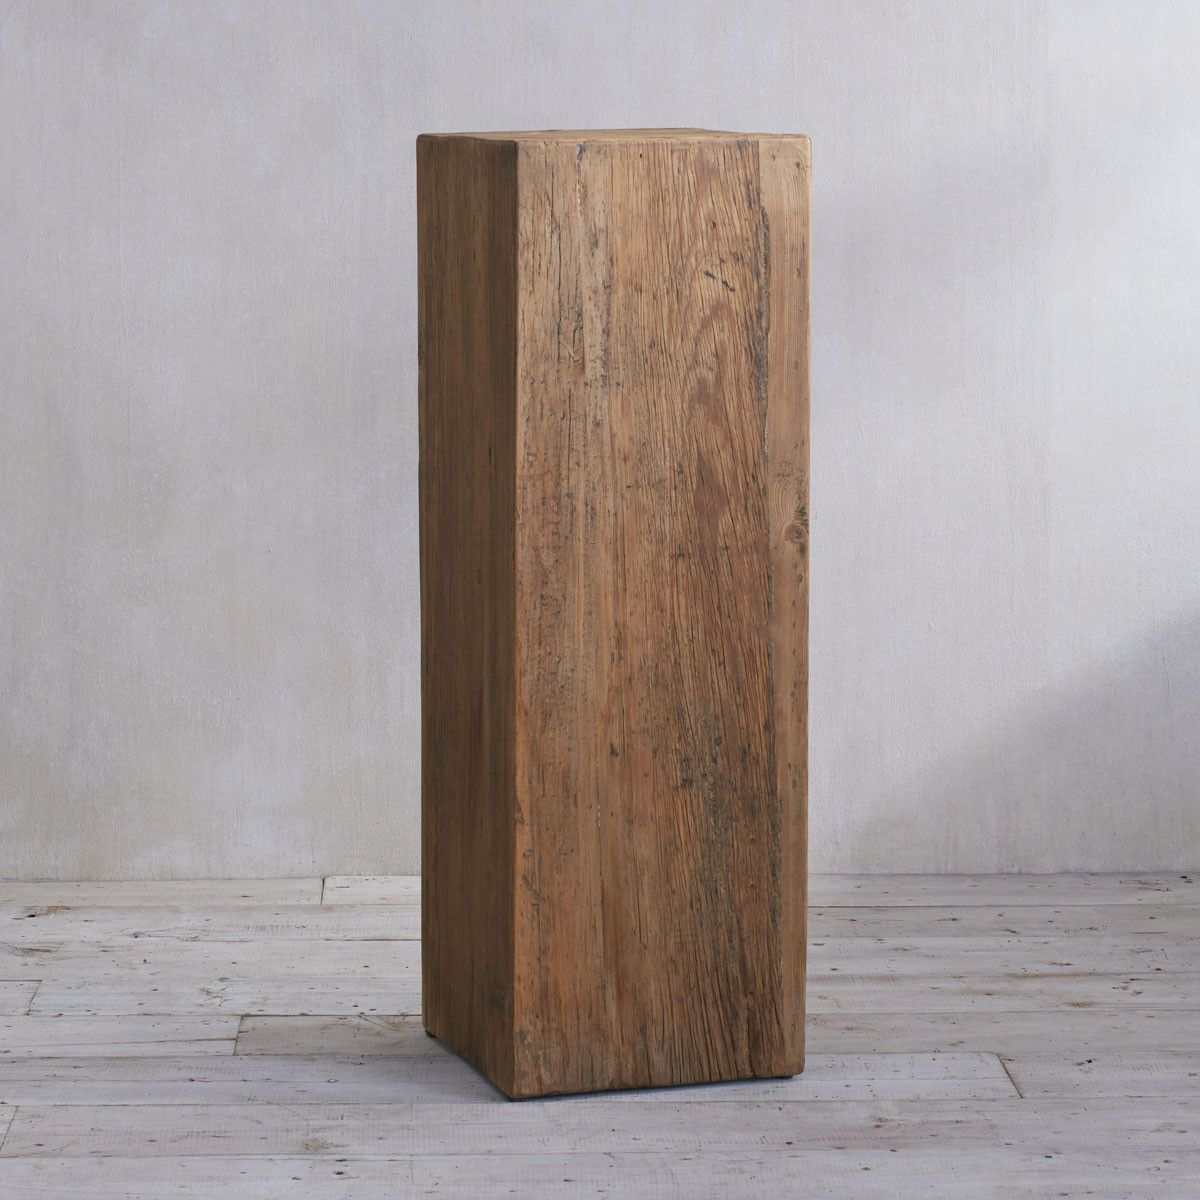 Eco Pedestal Tall Short Pedestal Display Stand Wisteria Wood Pedestal Table Stool Sustainable Furniture